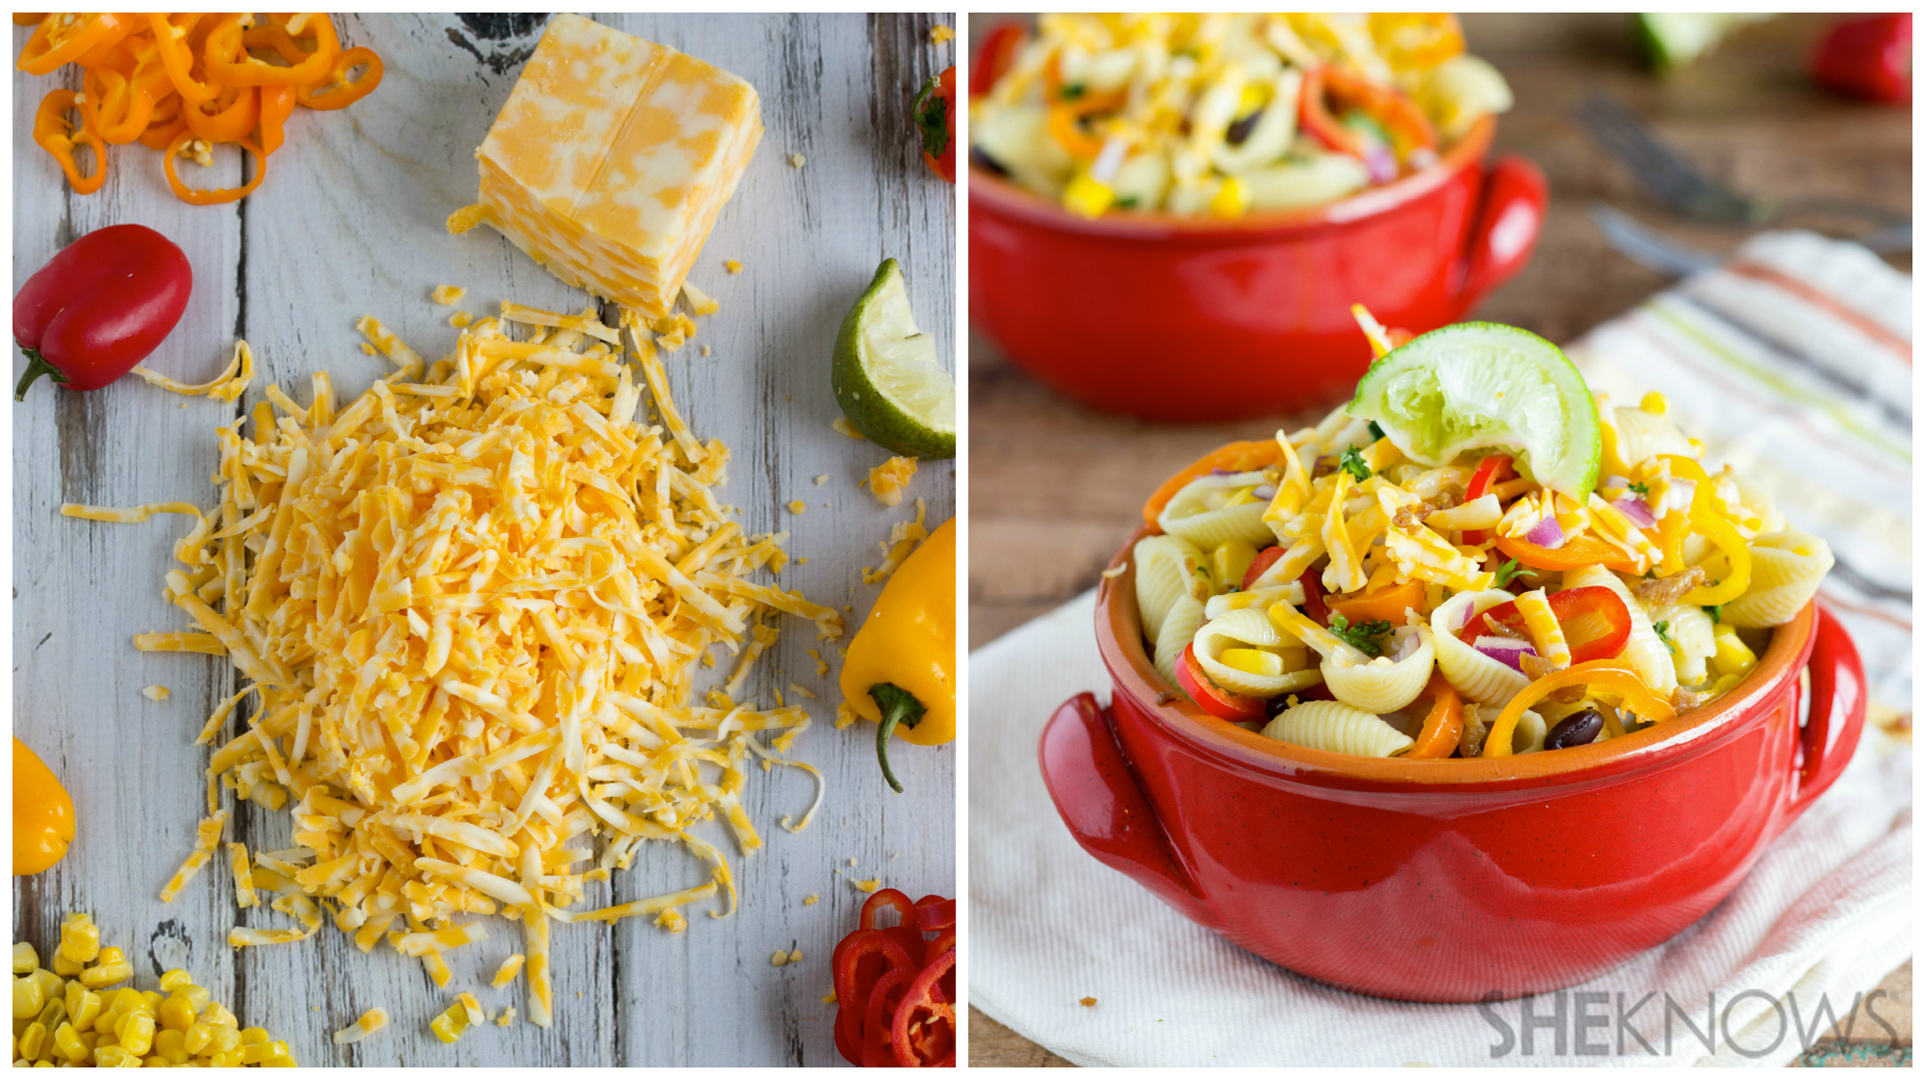 Simple one-pot pasta and veggie salad with a lime vinaigrette